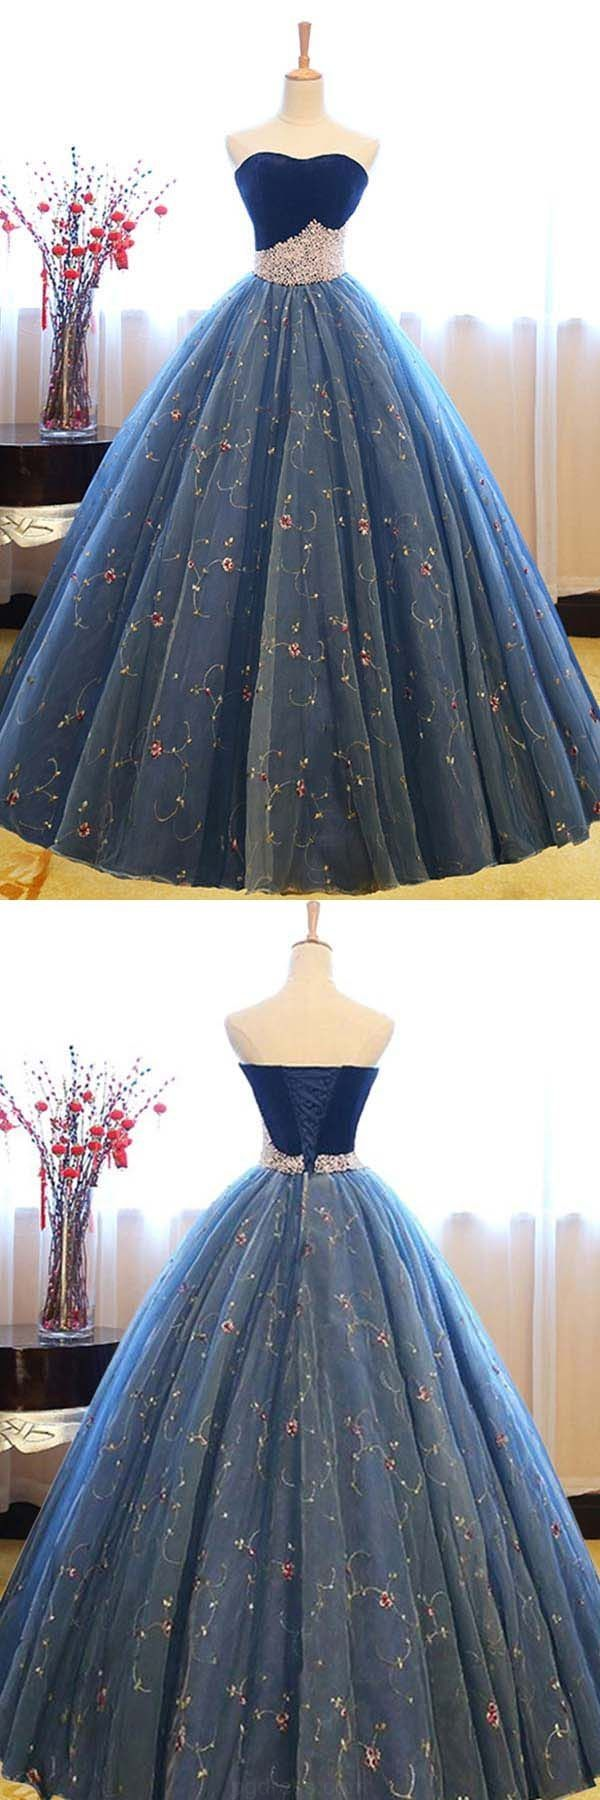 Fancy ball gown prom dresses ball gown sweetheart navy blue lace